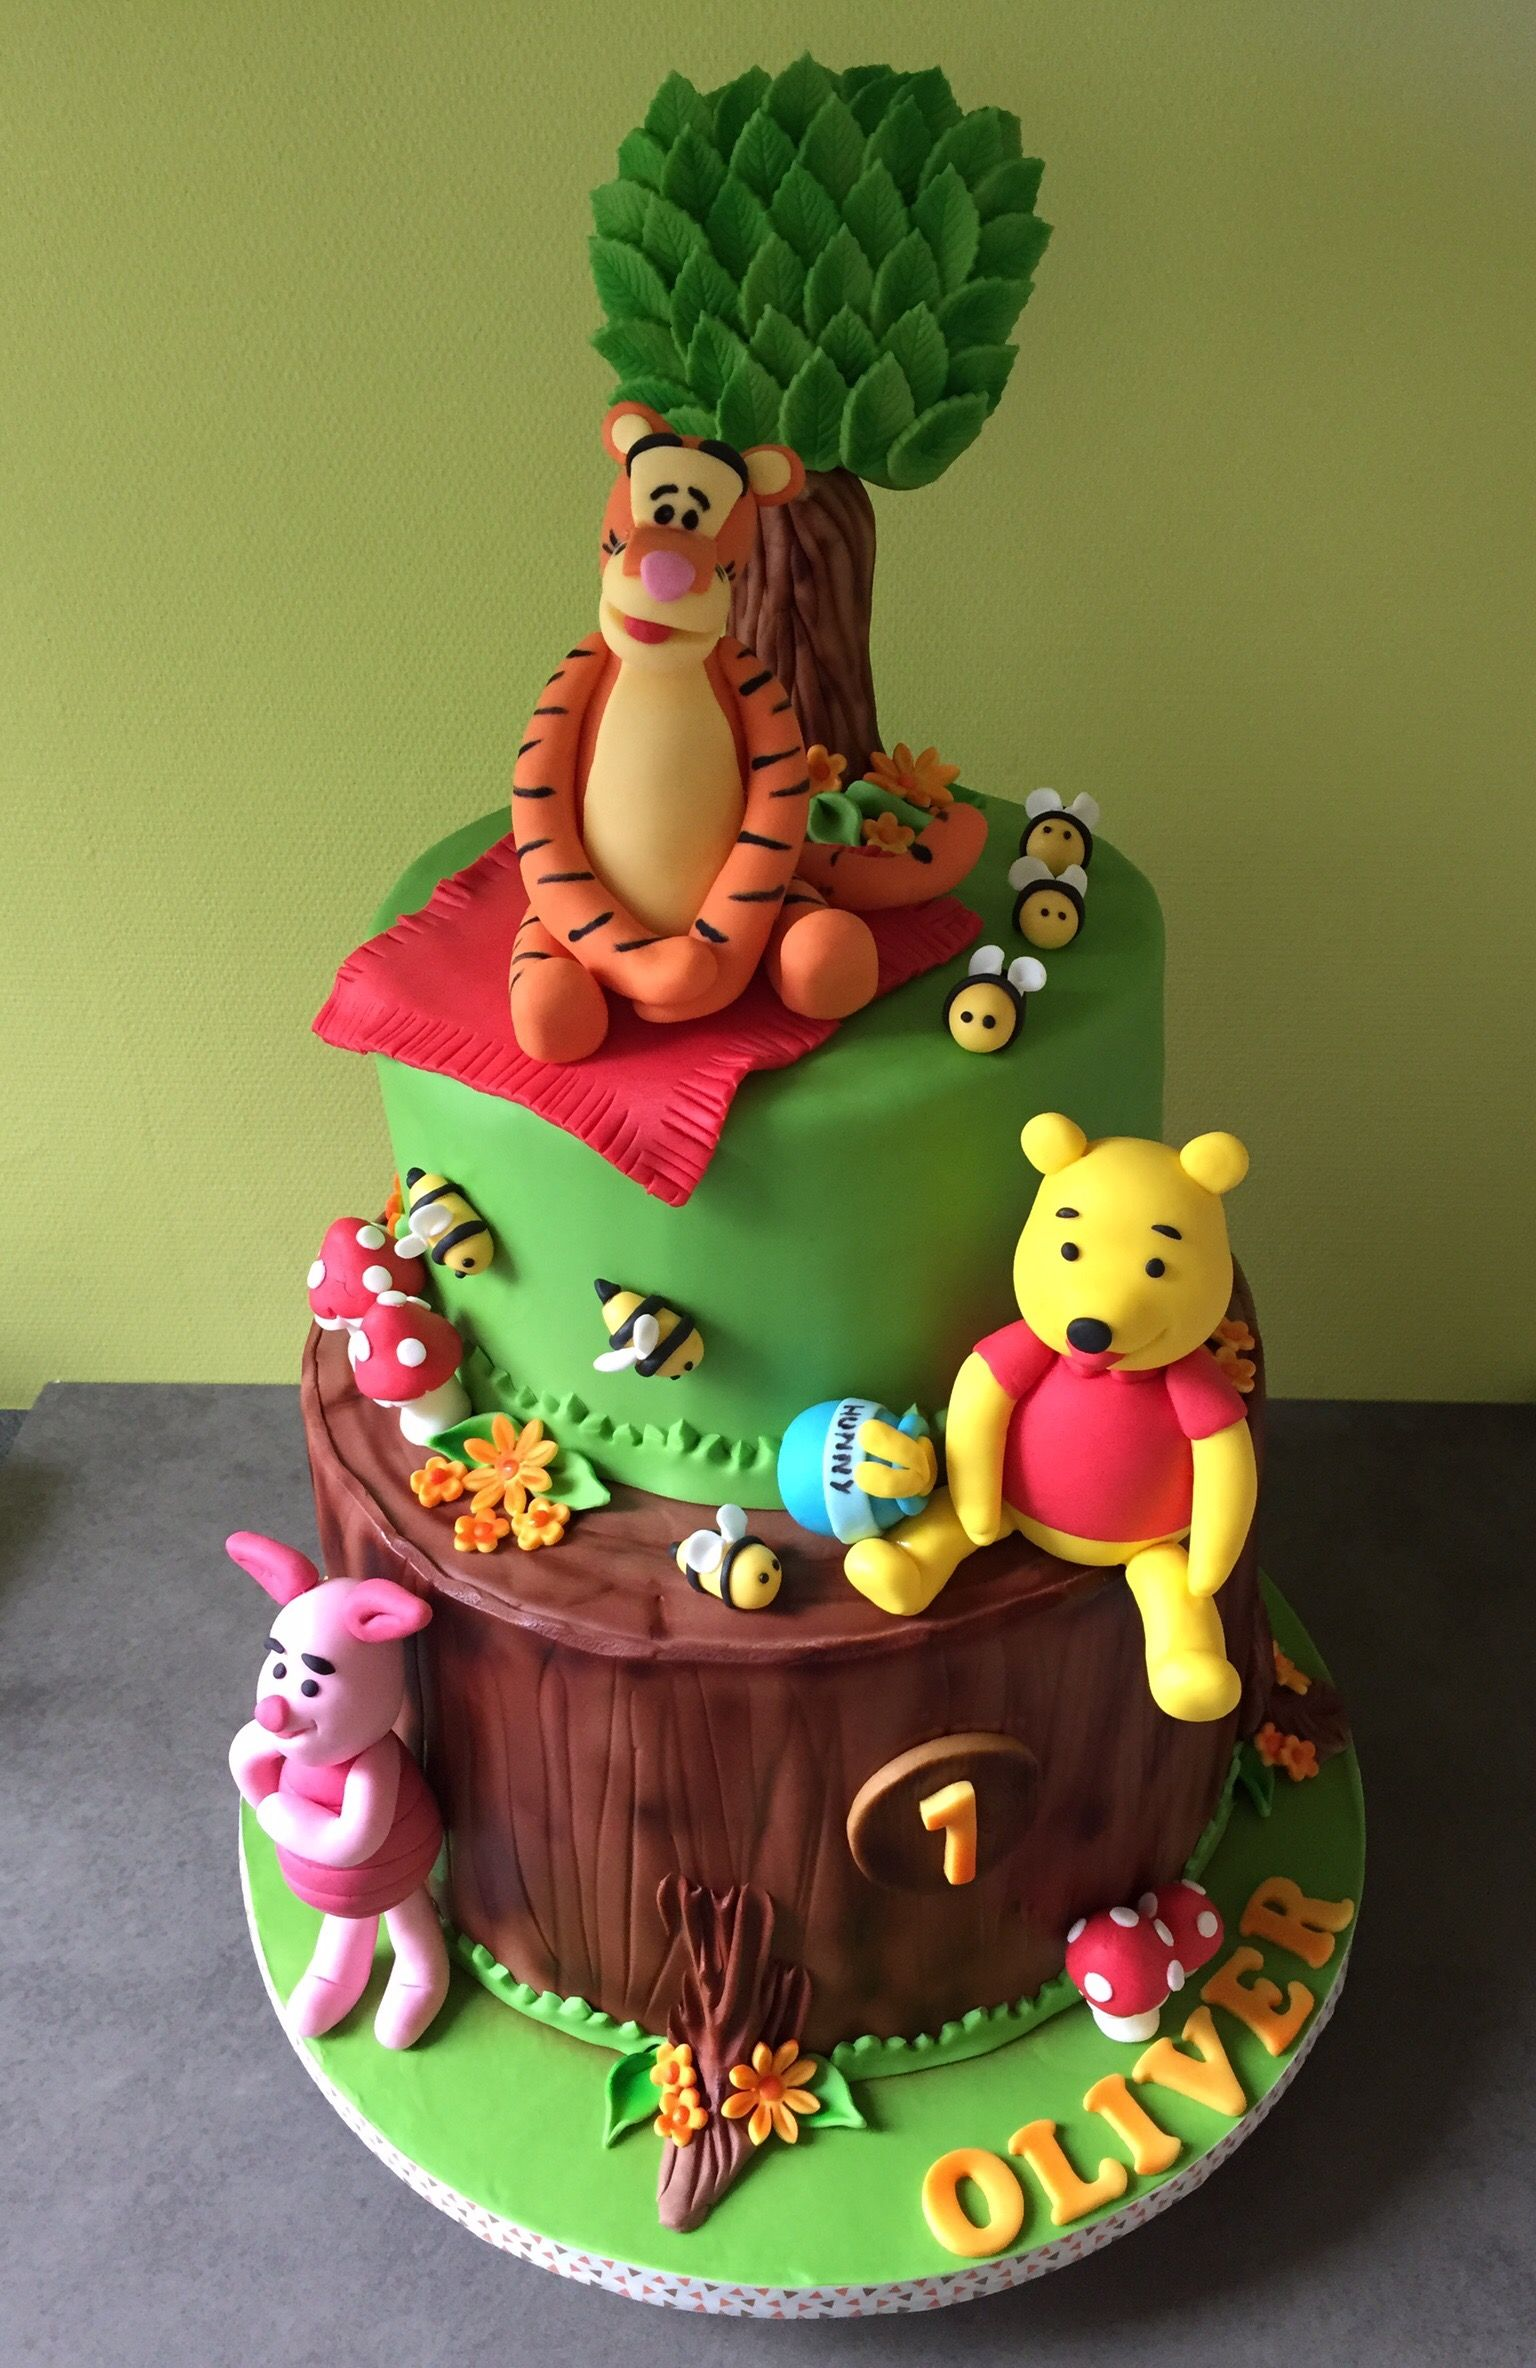 Cake winnie the pooh winnie the pooh cake winnie the